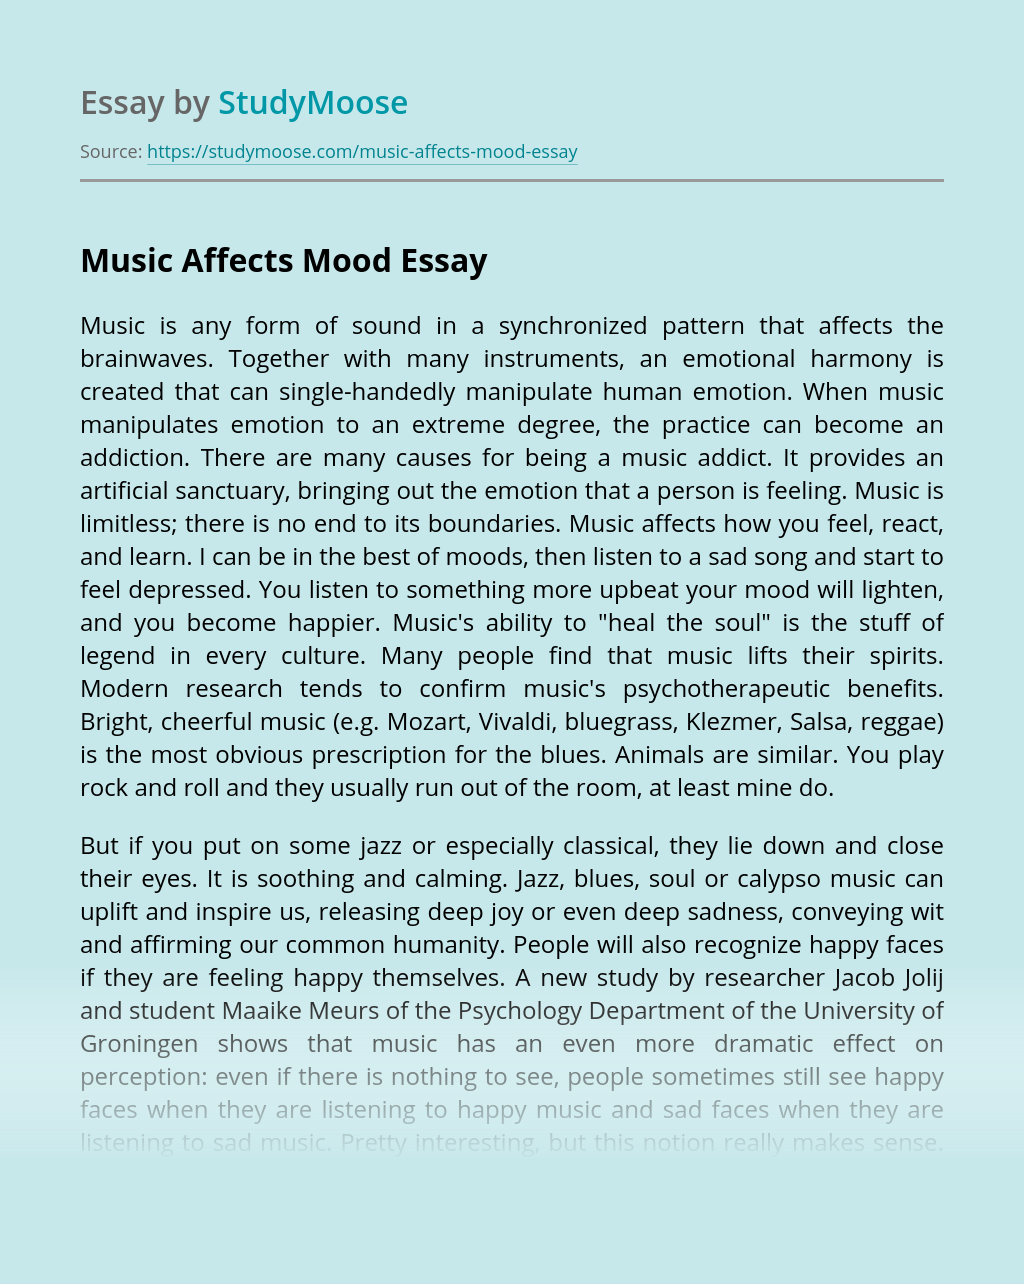 Music Affects Mood